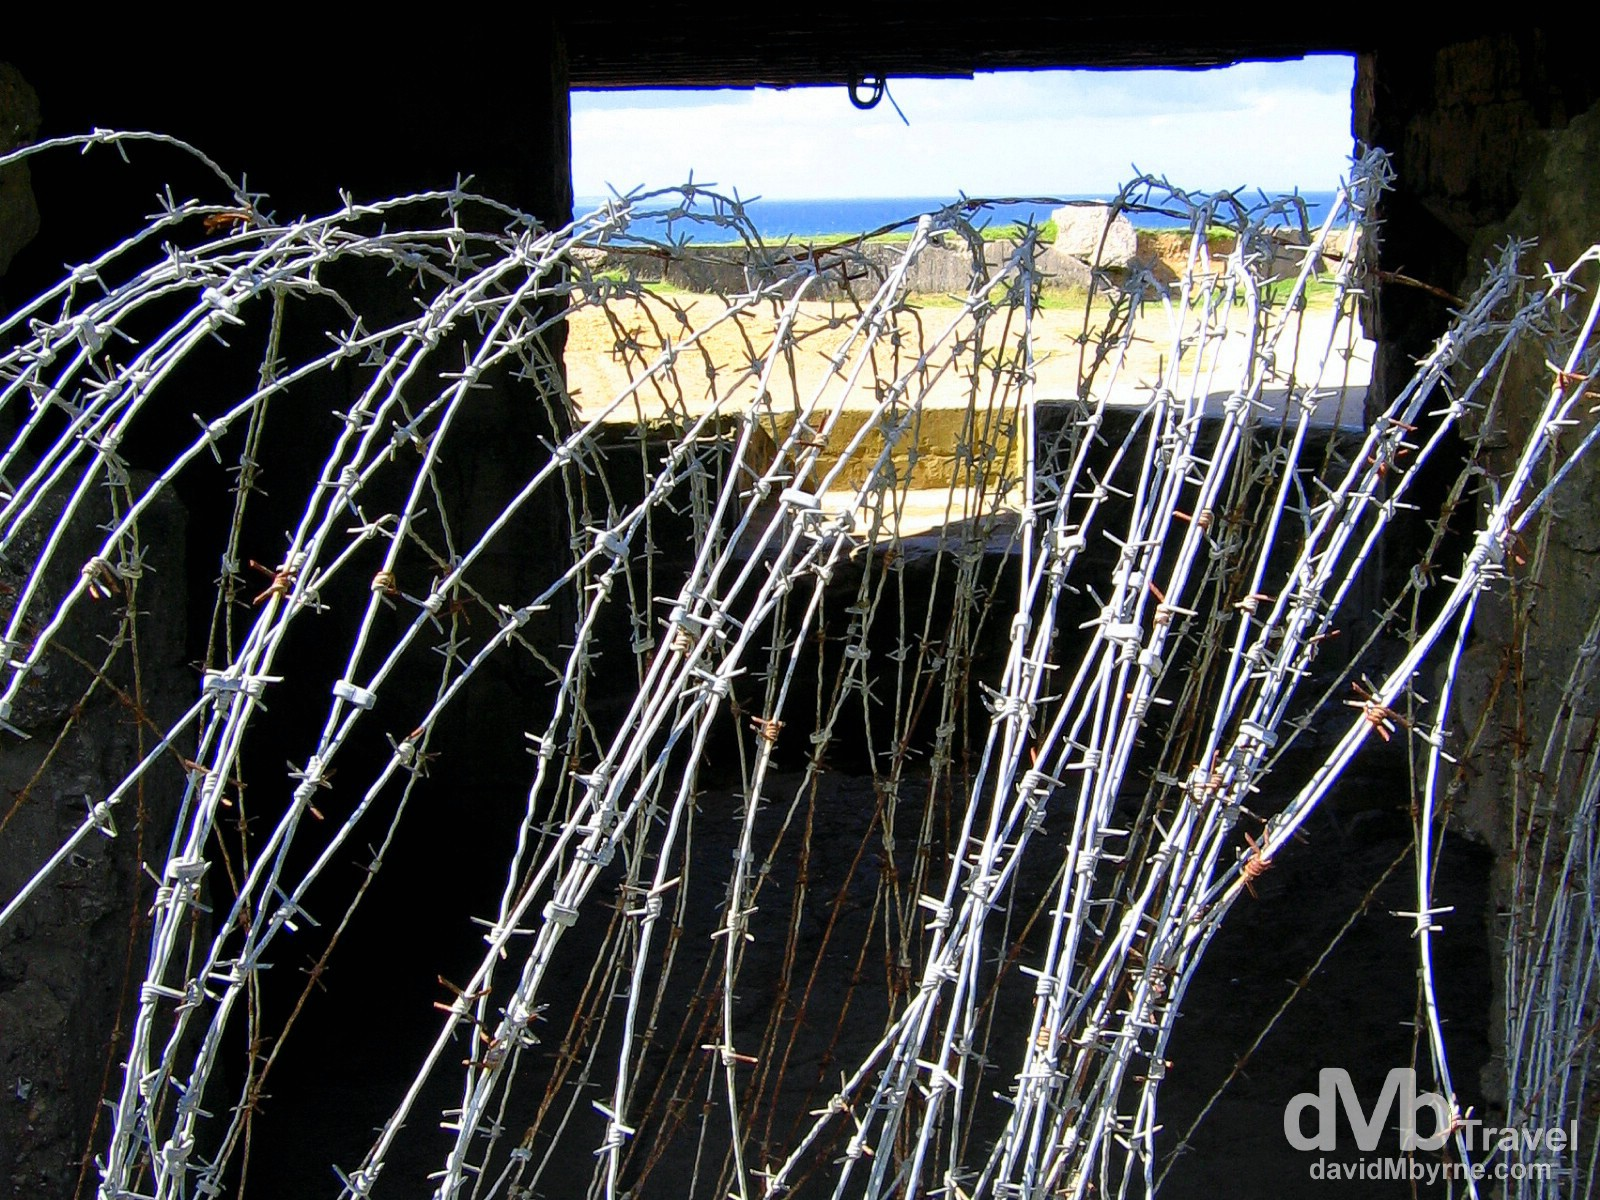 Barbed wire at Pointe Du Hoc, Omaha Beach, Normandy, France. August 16th, 2007.